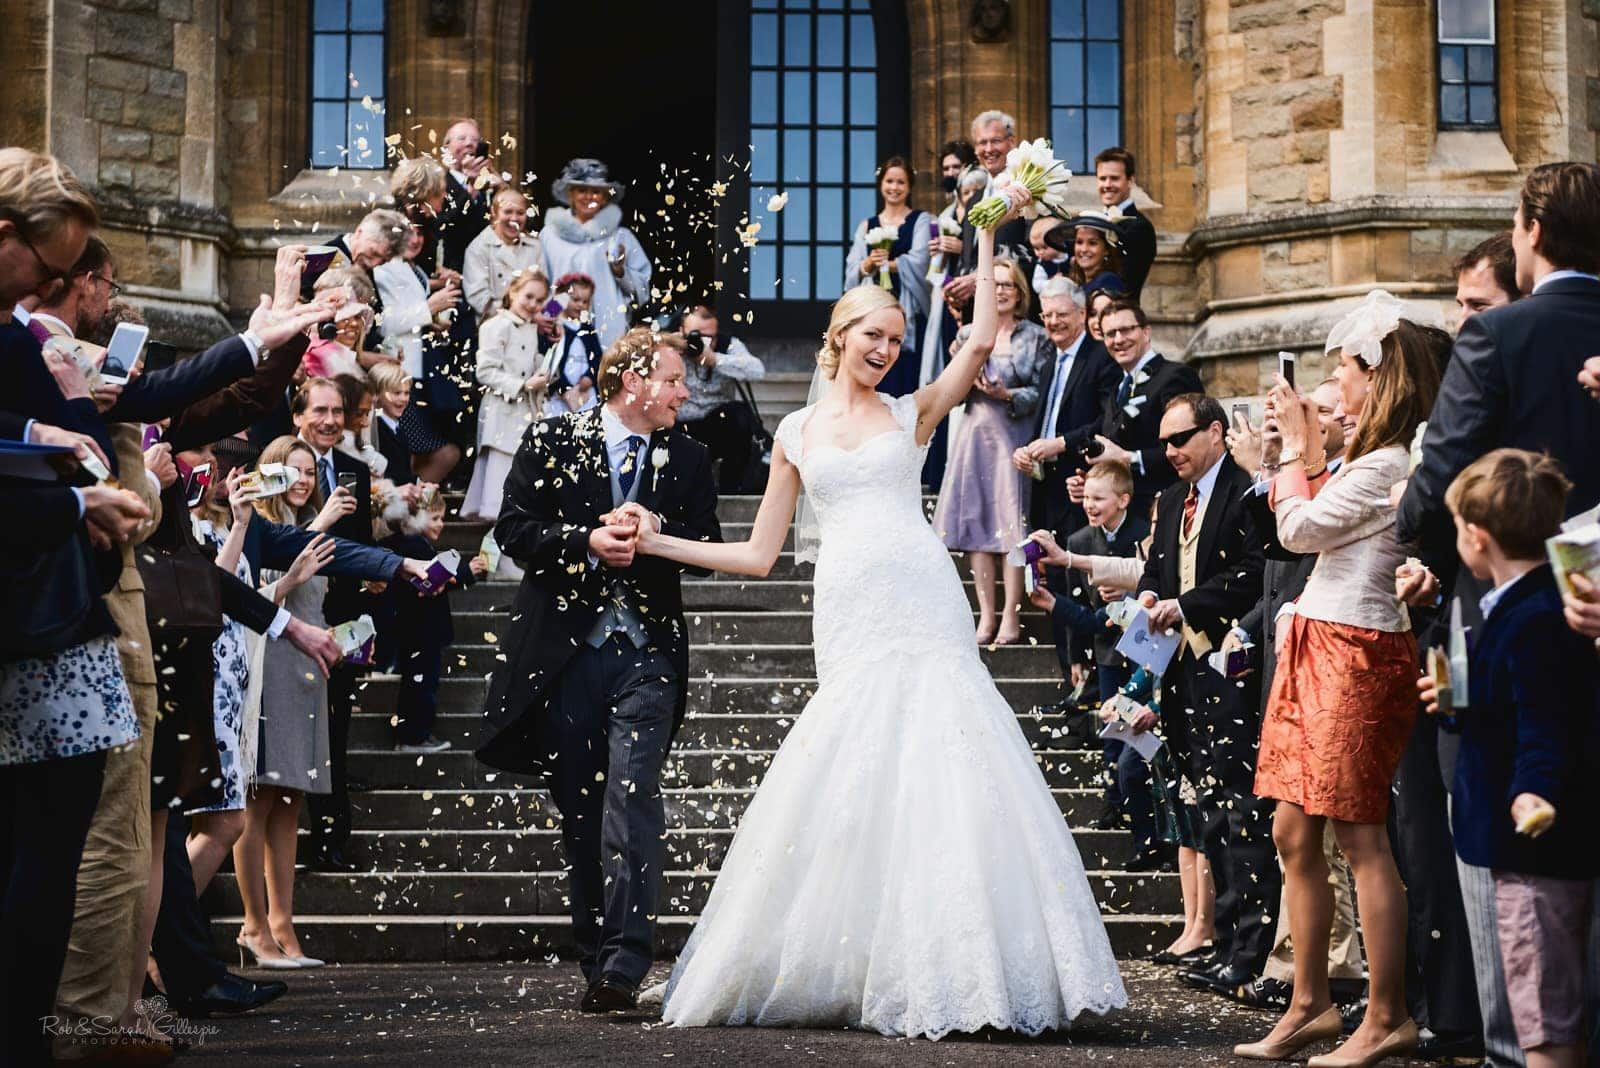 Bride and groom walk down steps as guests throw confetti